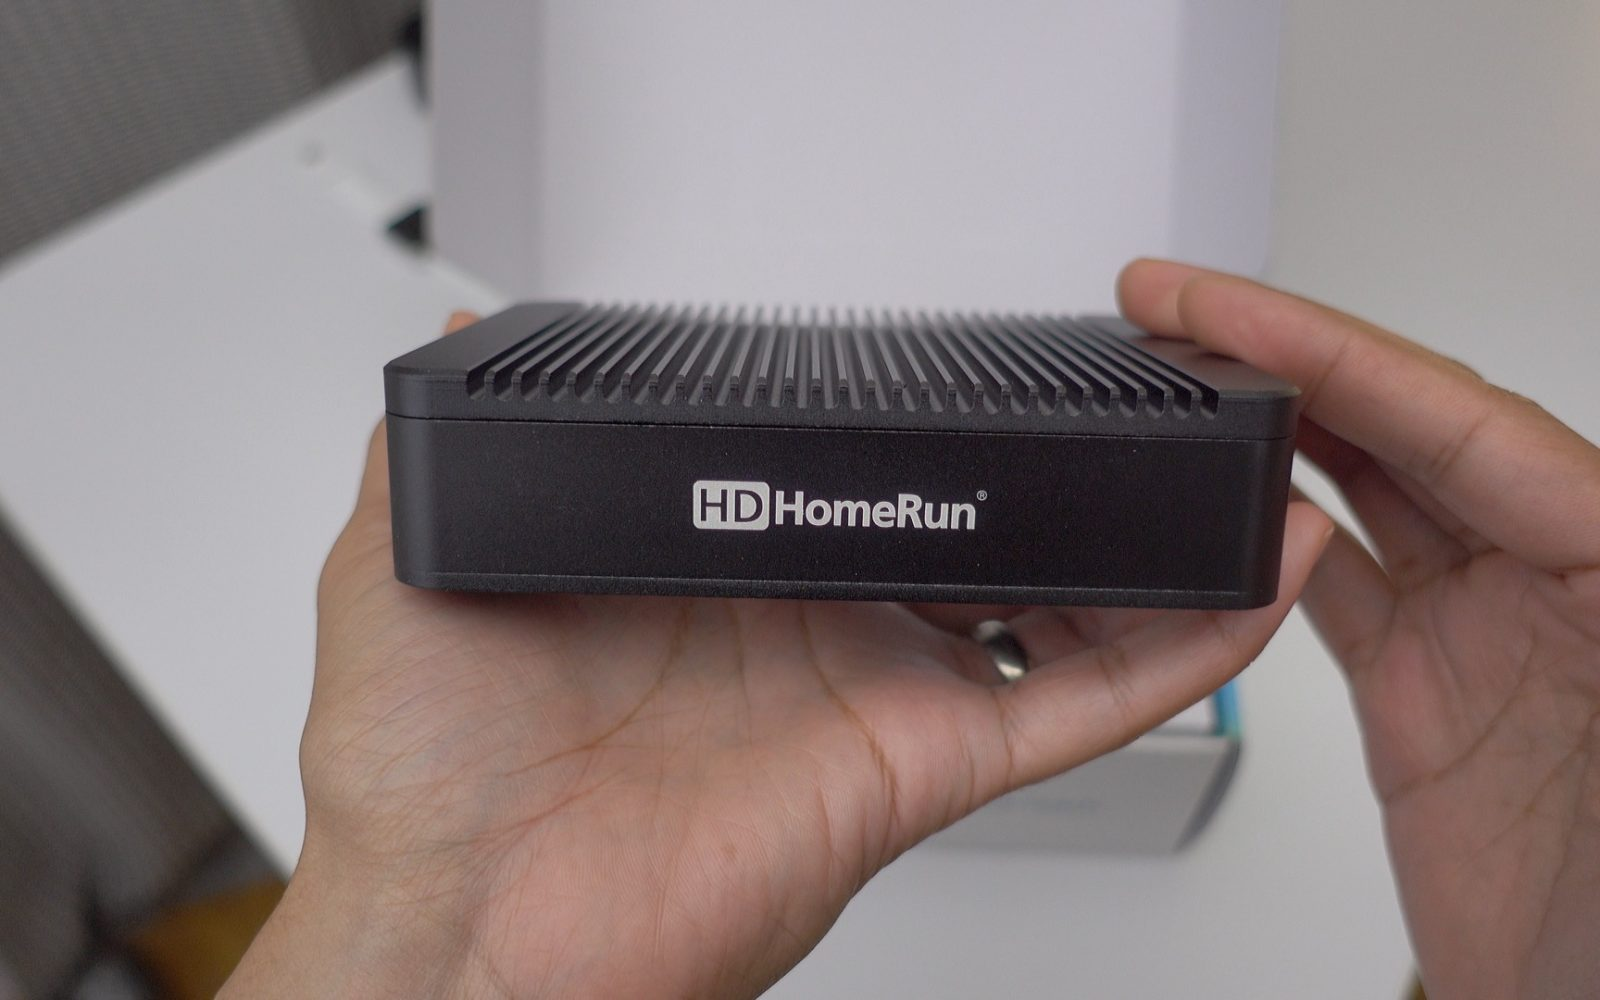 Quick Look: the newly redesigned HDHomeRun Extend is a great